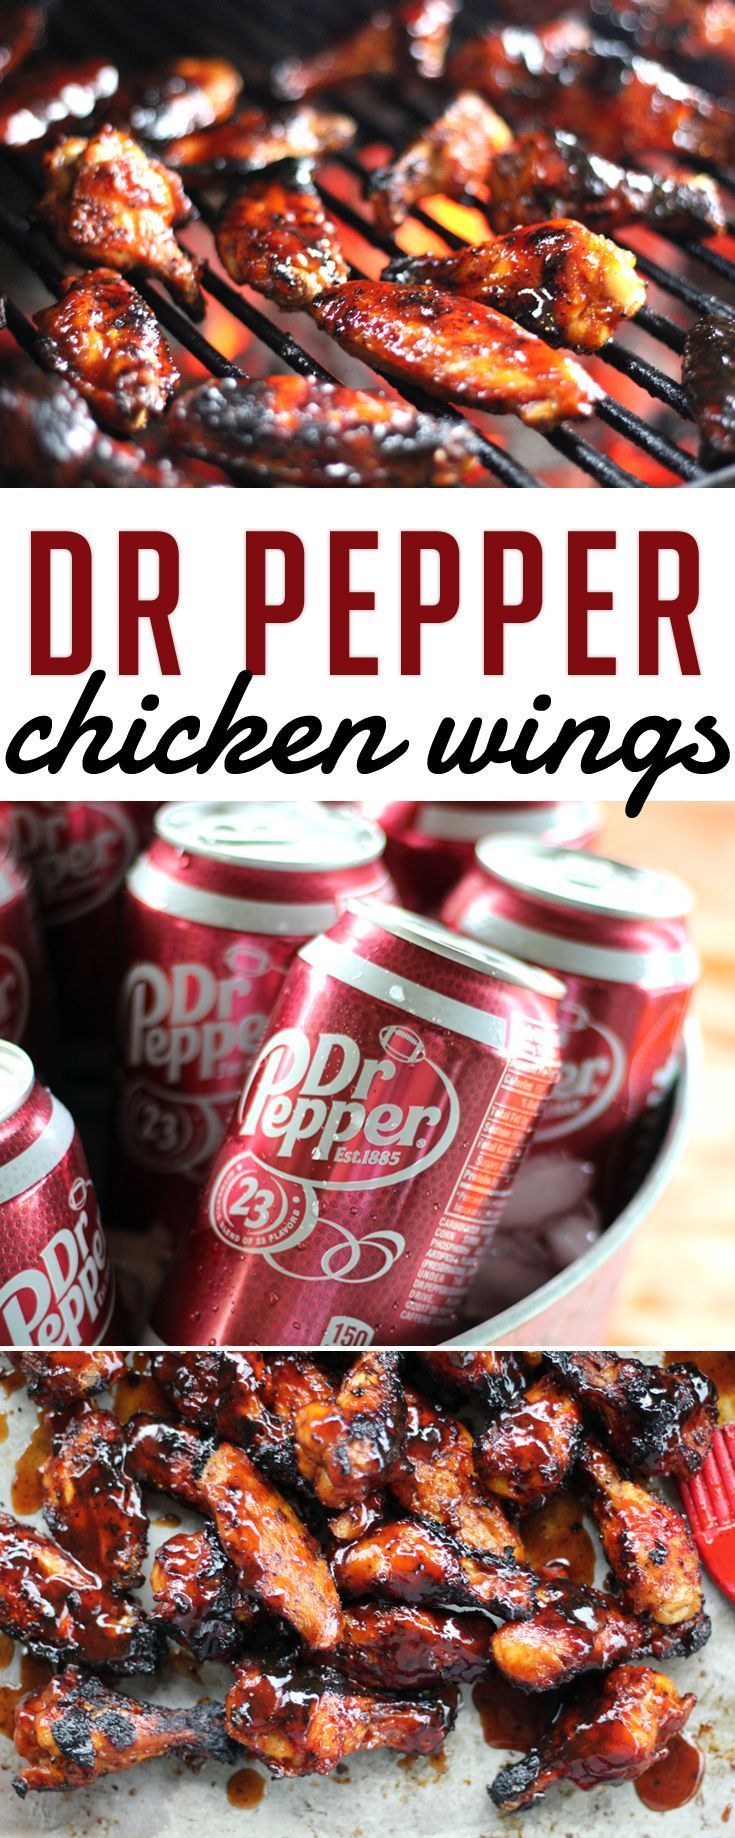 Our game day inspired recipe? Sweet, sticky and spicy chicken wings basted with an easy homemade Dr Pepper barbecue sauce. The unique and bold flavor of Dr Pepper creates a beautiful rich and flavorful wing sauce. #ad #GrillGating #GrillGatingHero #grillingrecipes